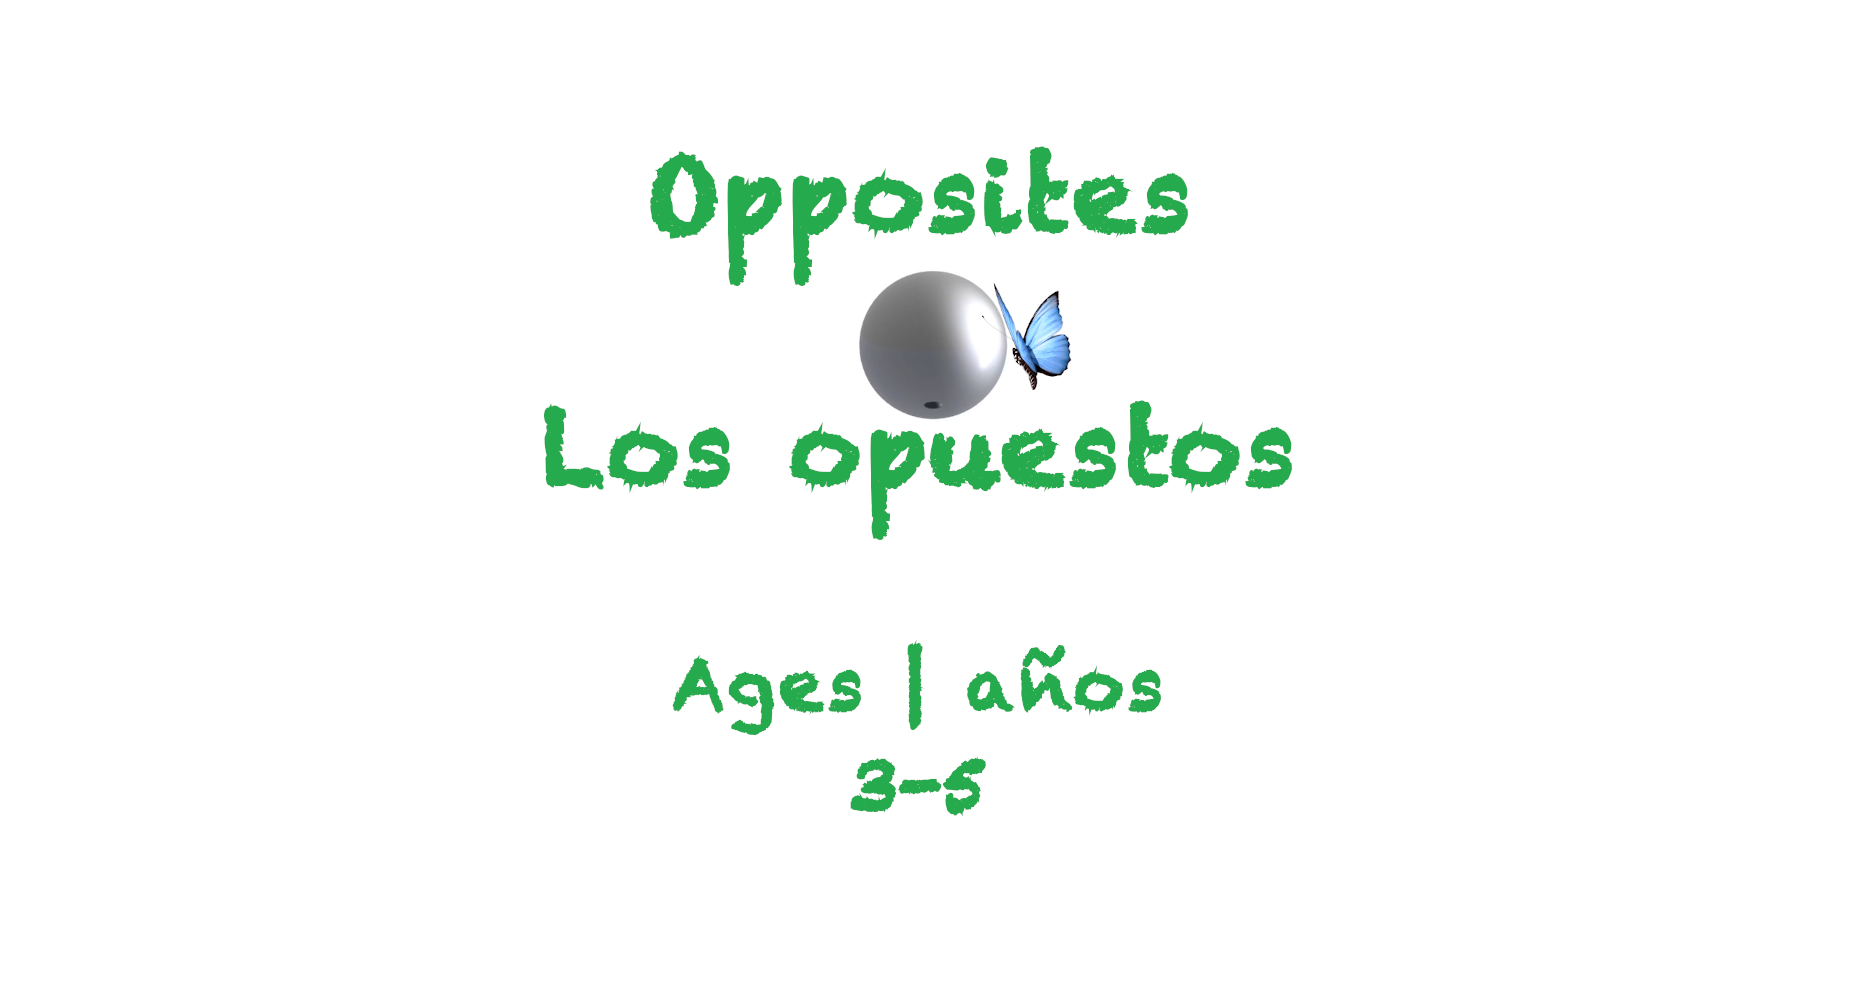 Week 40 Opposites Card Ages 6-8